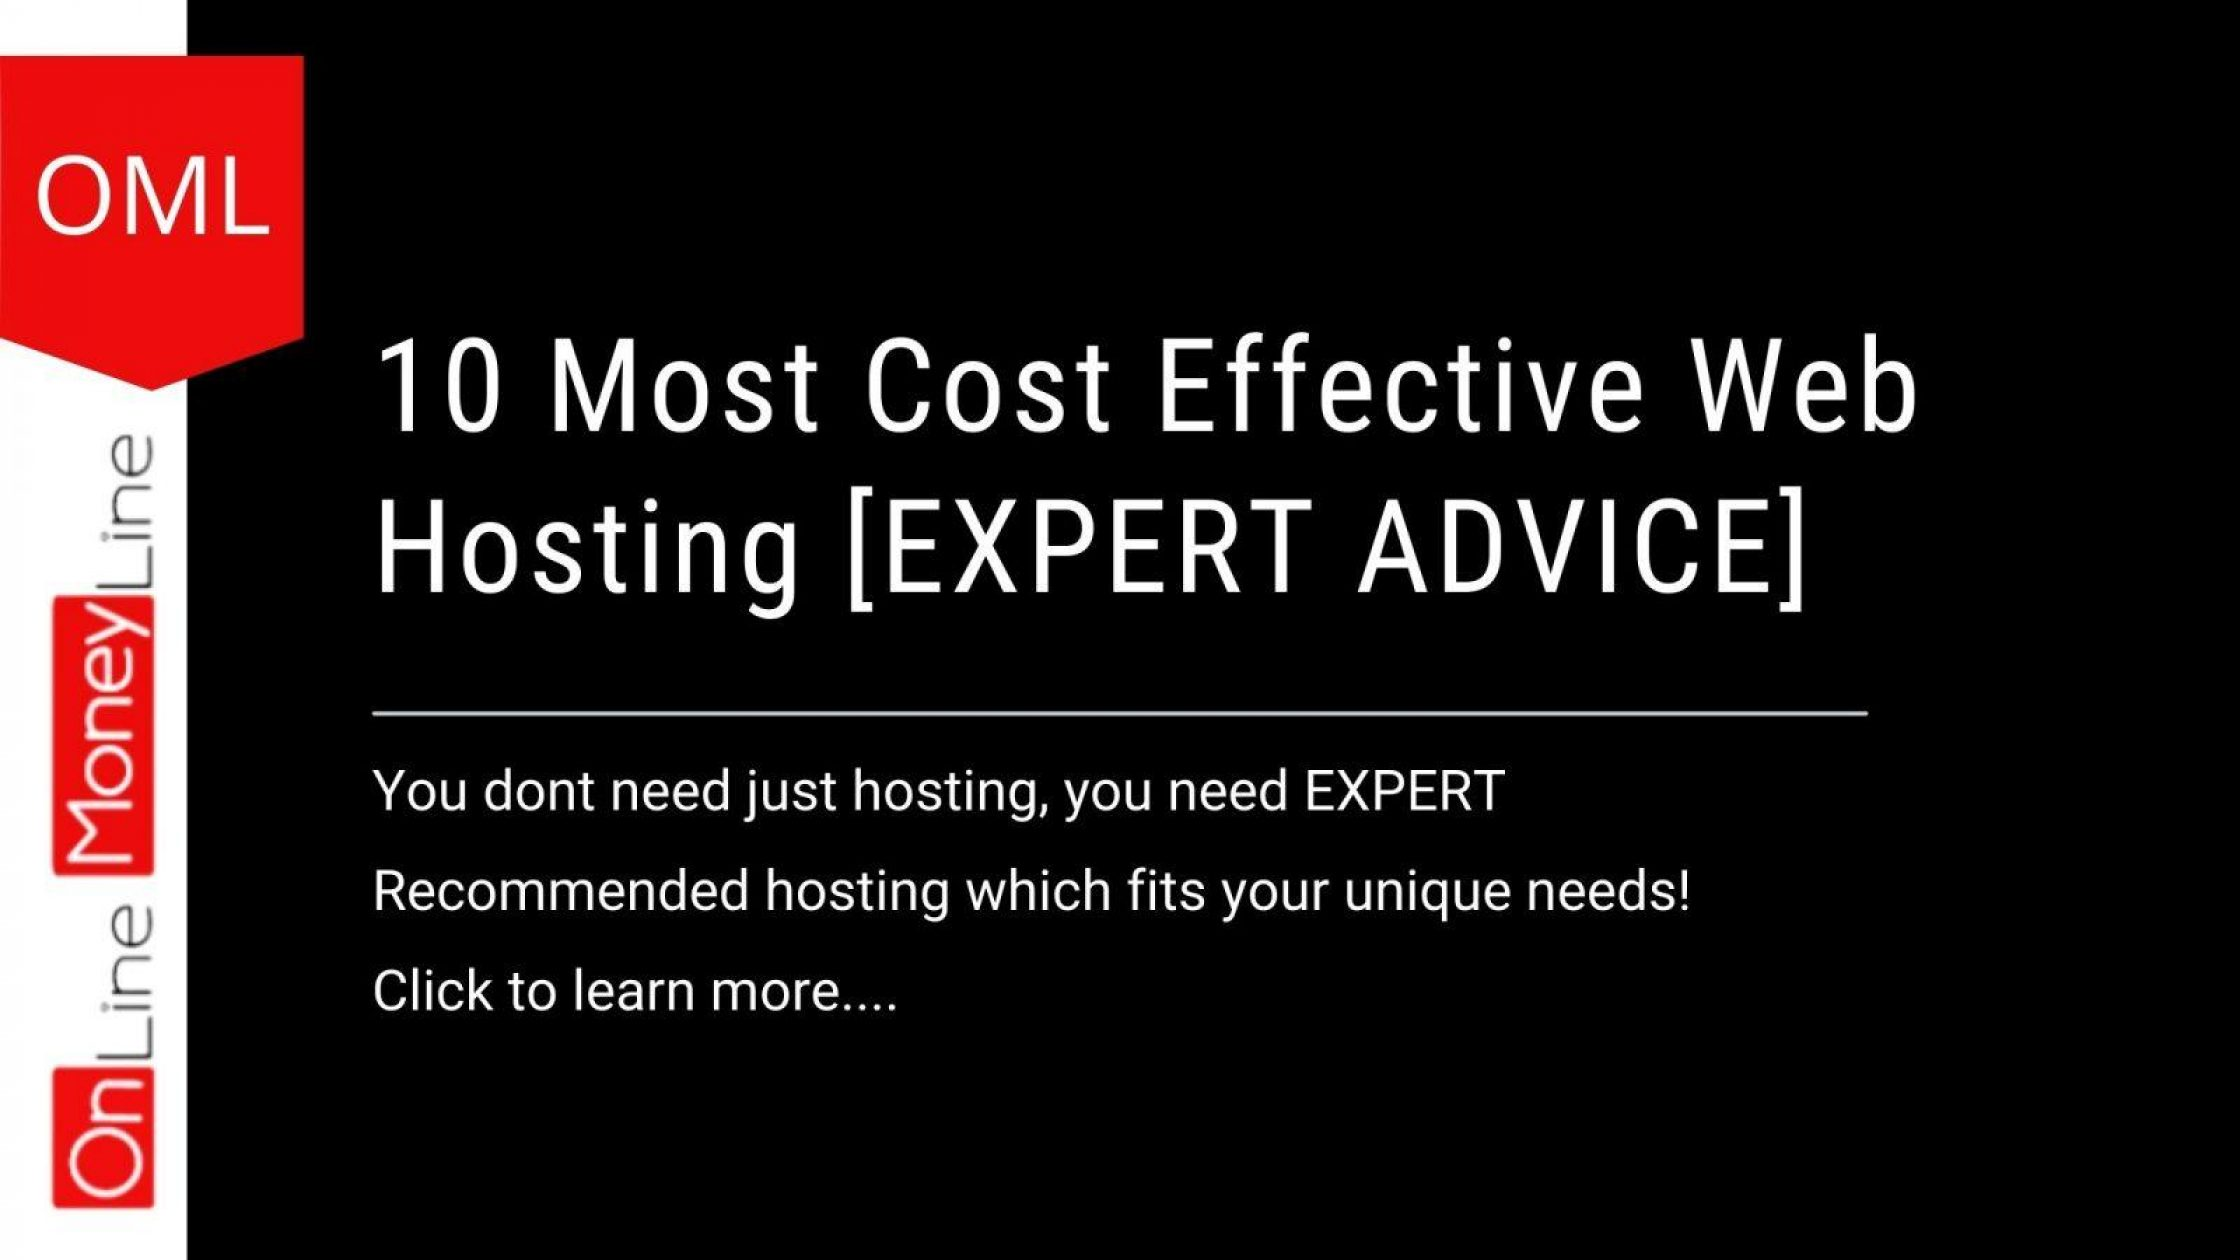 10 Most Cost Effective Web Hosting [EXPERT ADVICE]